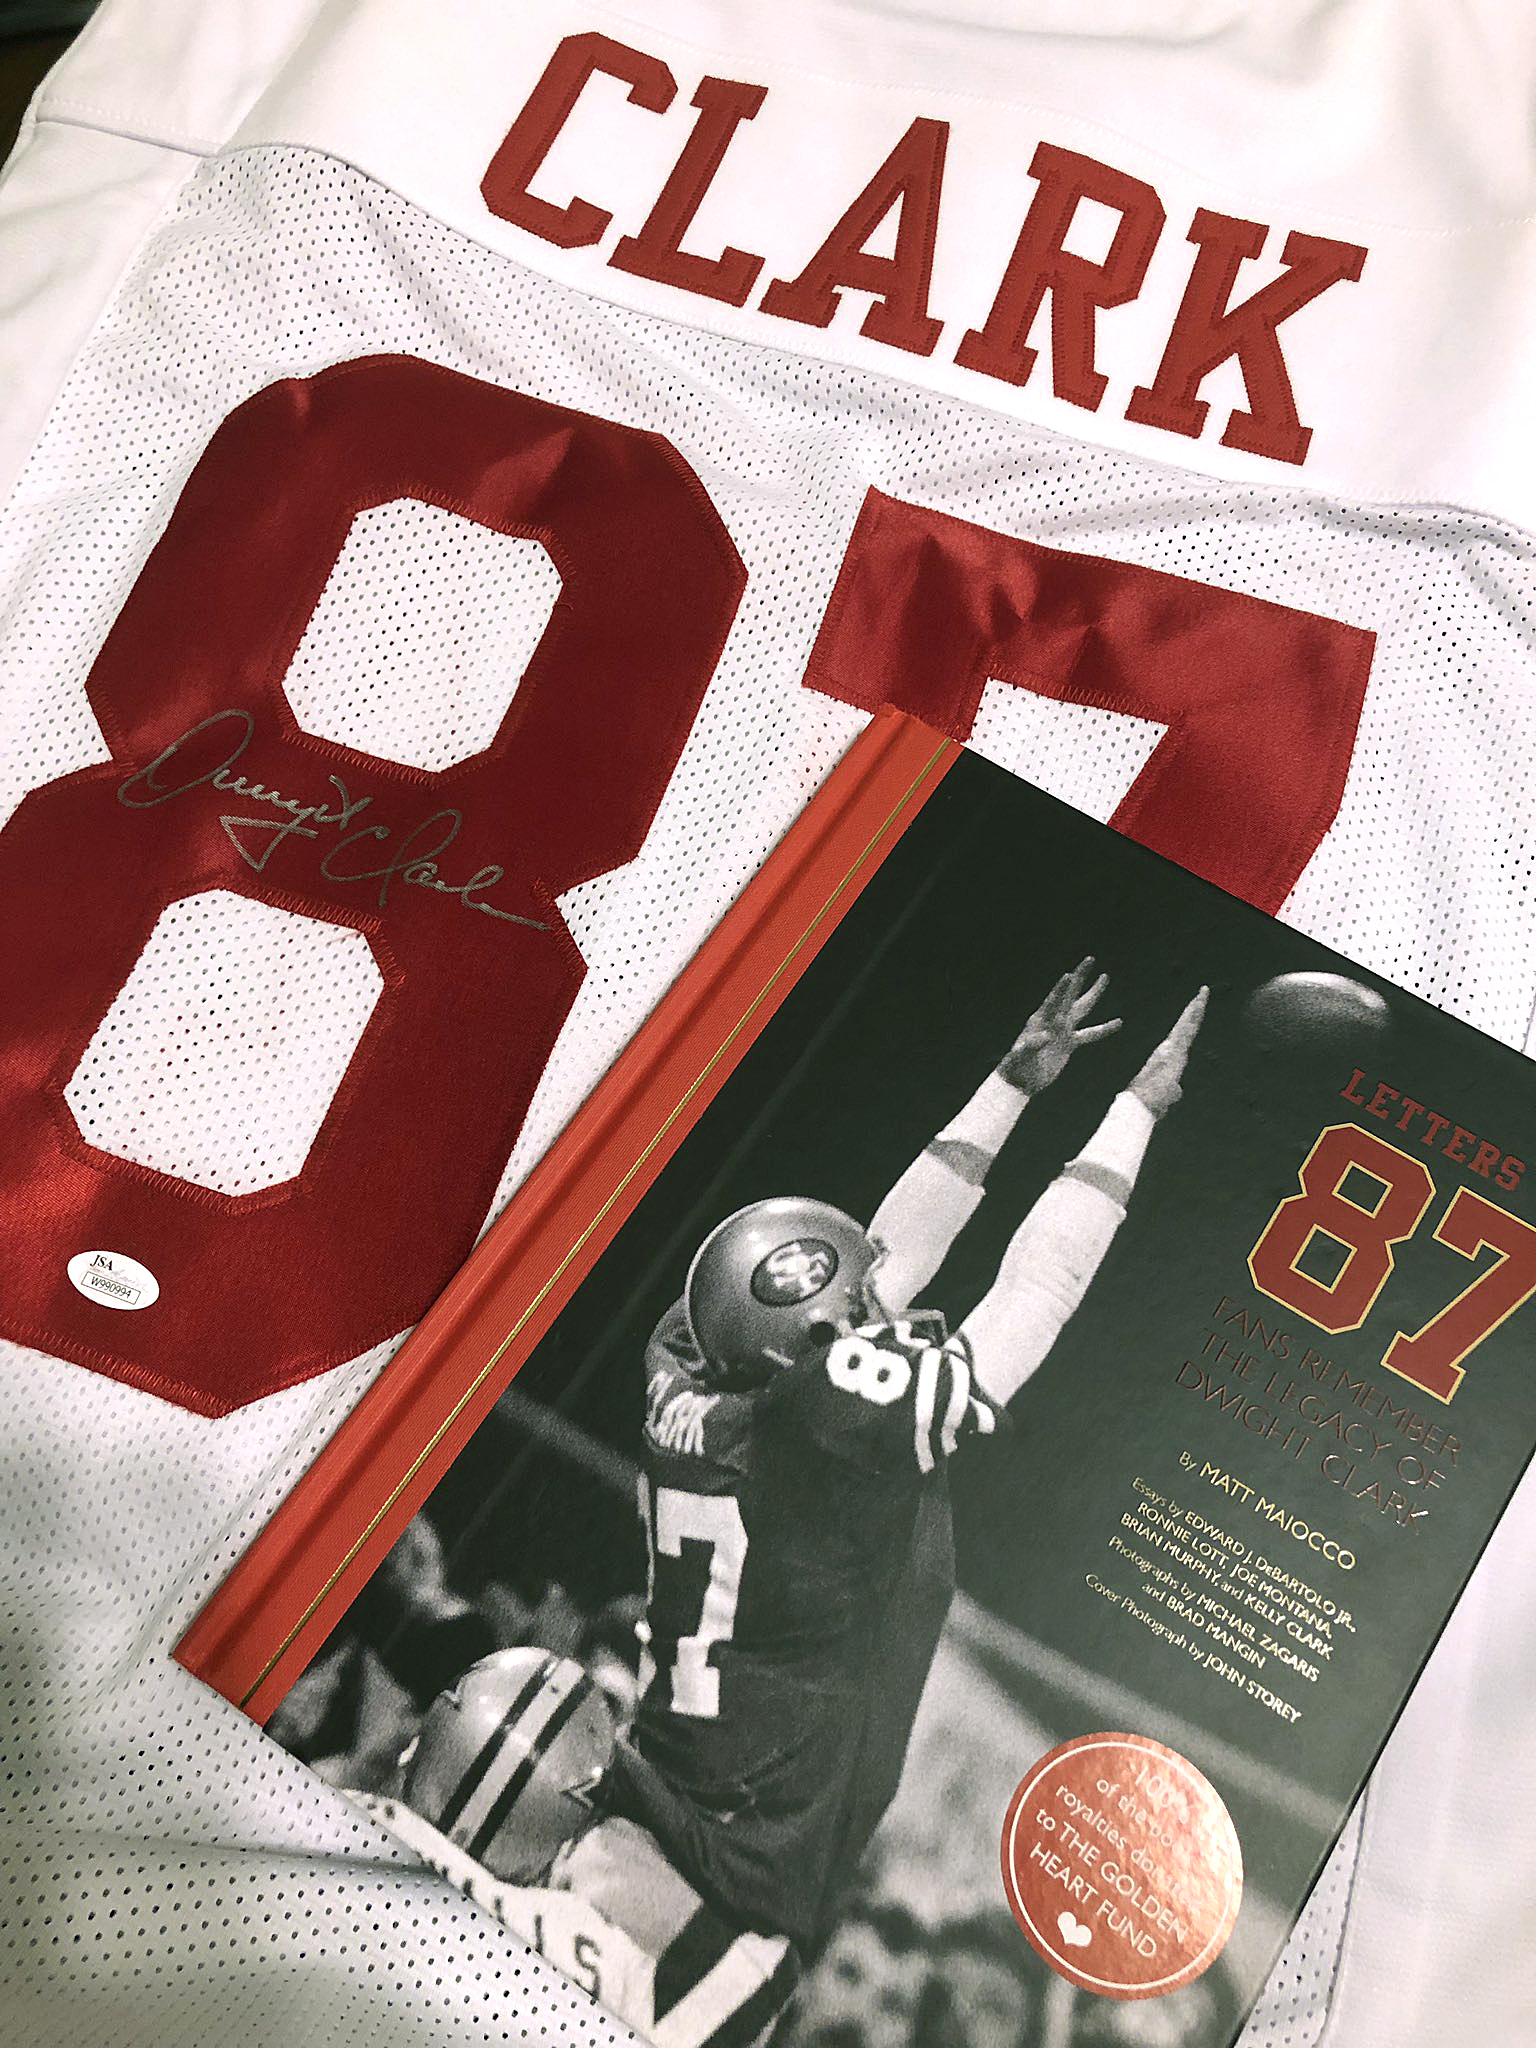 @jesse_vail - @MaioccoNBCS  A little behind but can't wait to read this!!! I may be part of a younger generation of Niner Faithful but I sure do love to read up on team history!